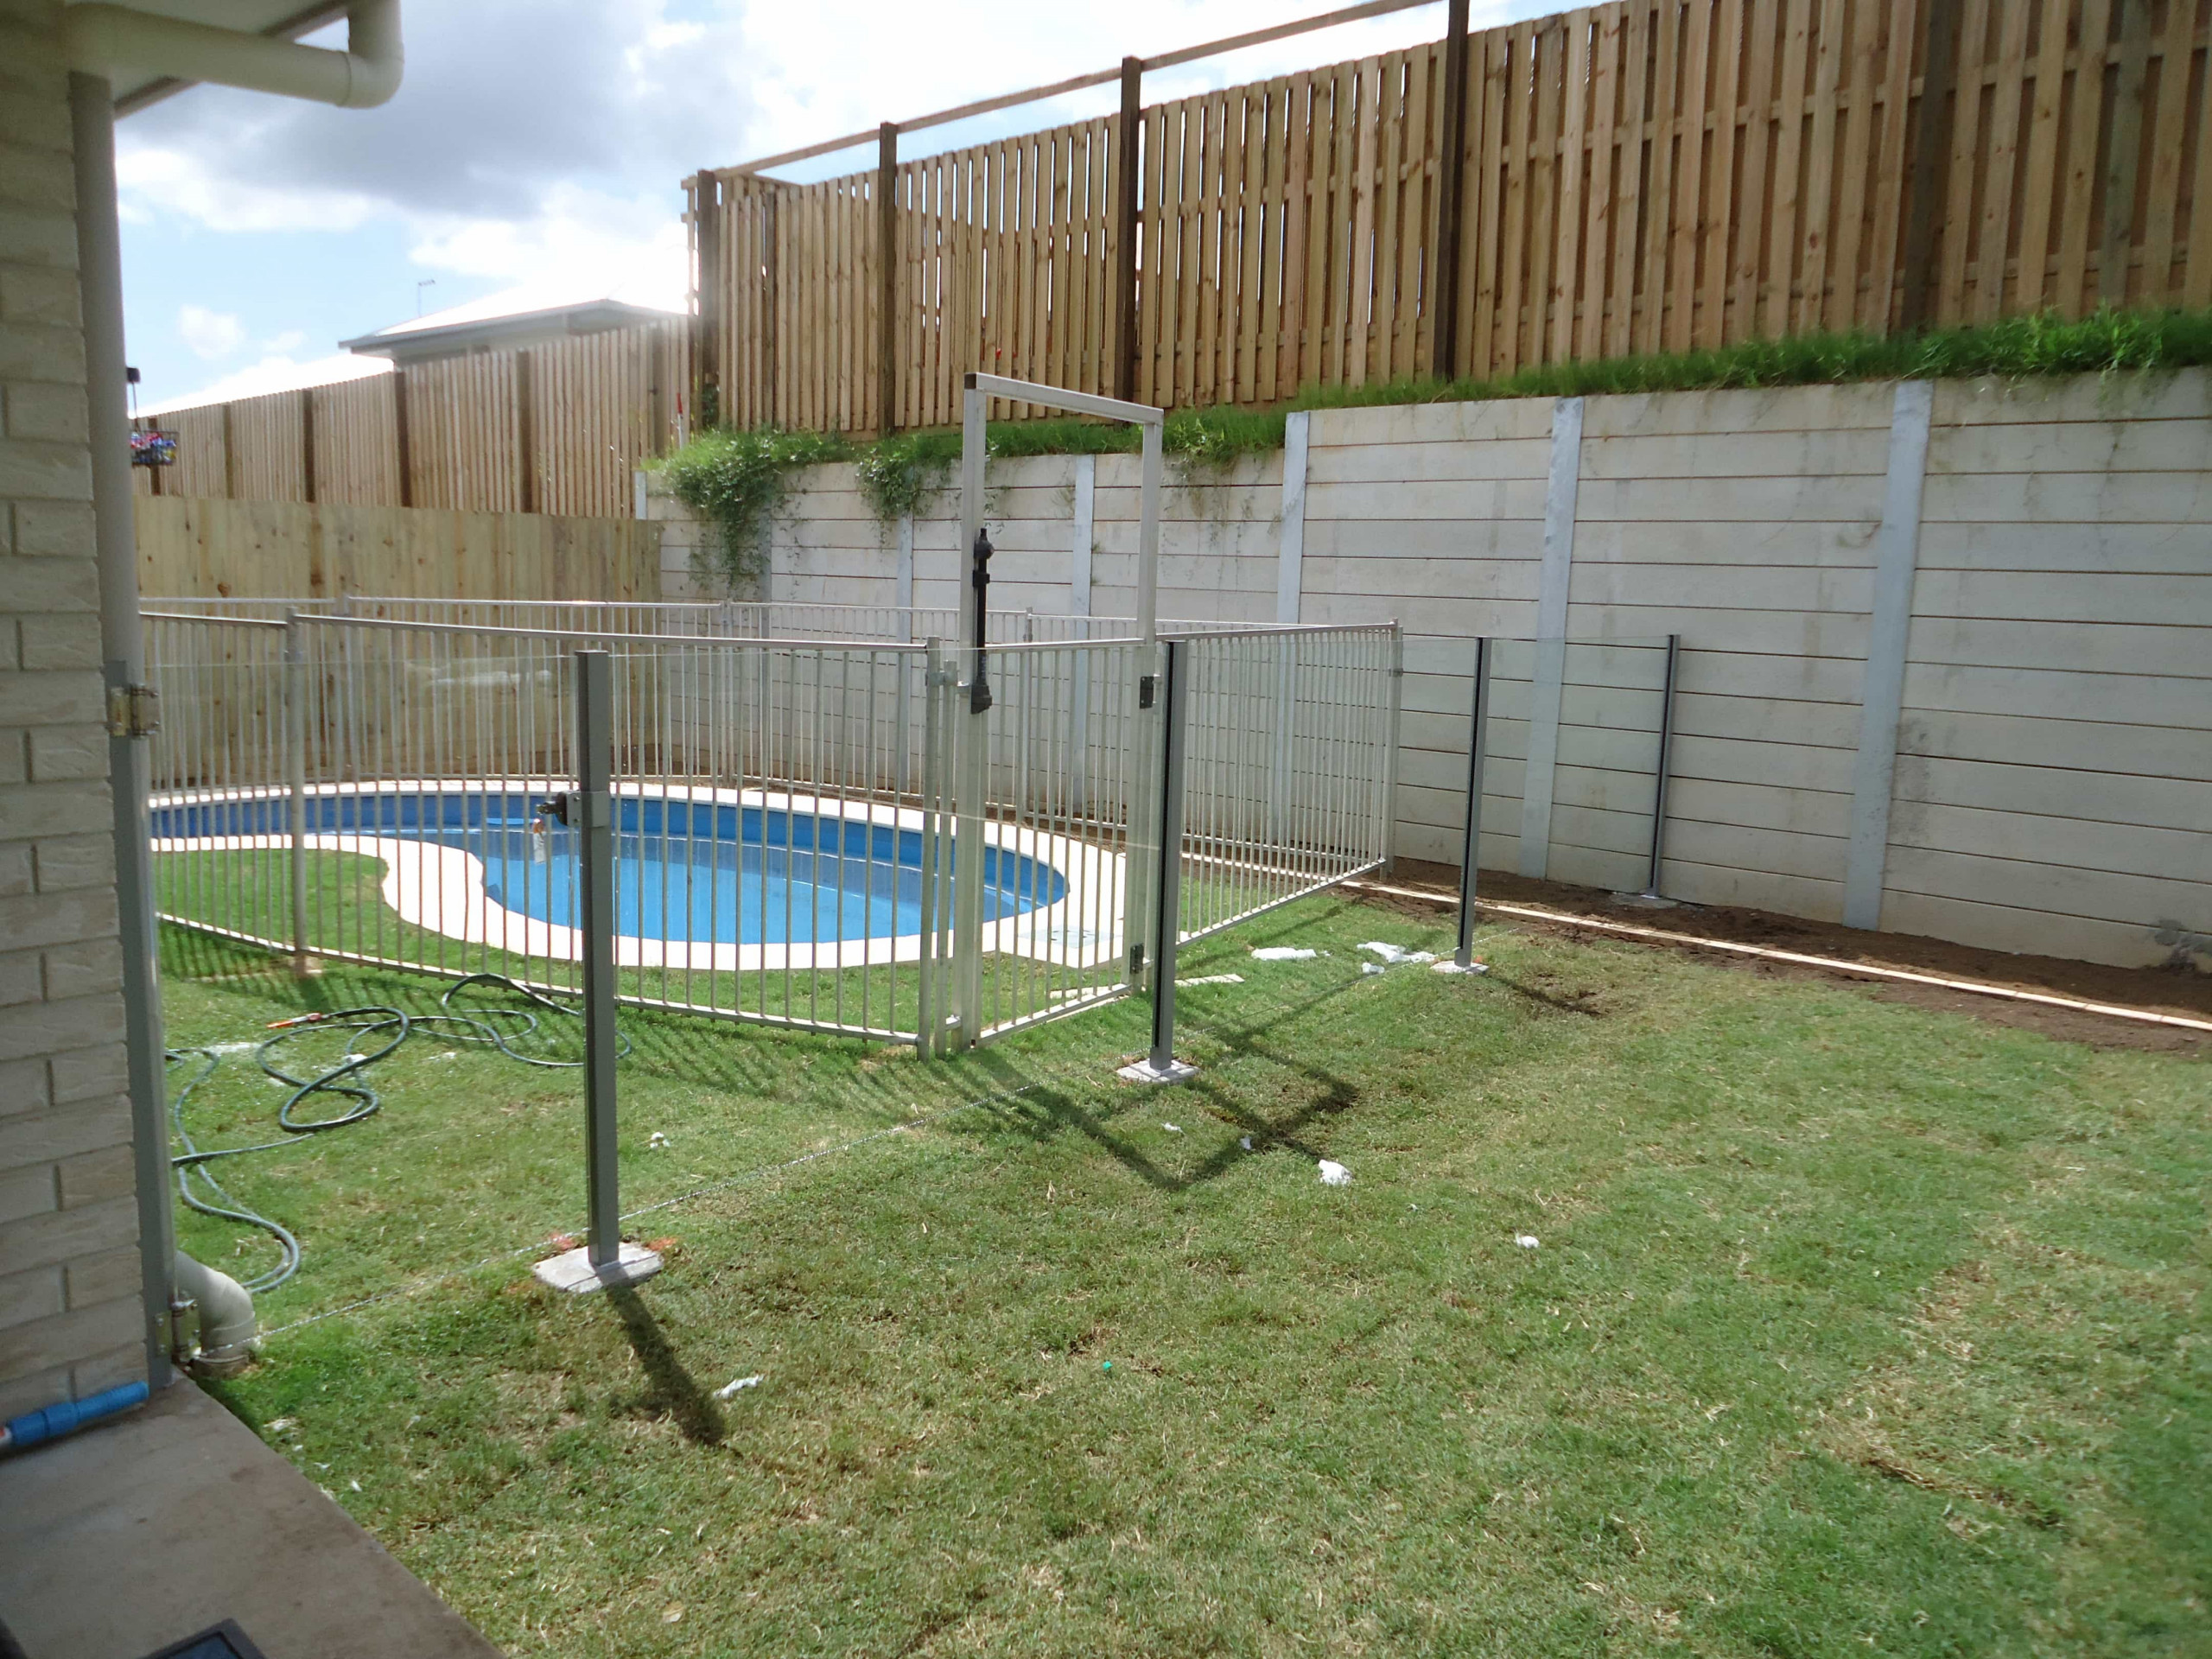 How To Install Glass Pool Fencing? - ALS Glass Works